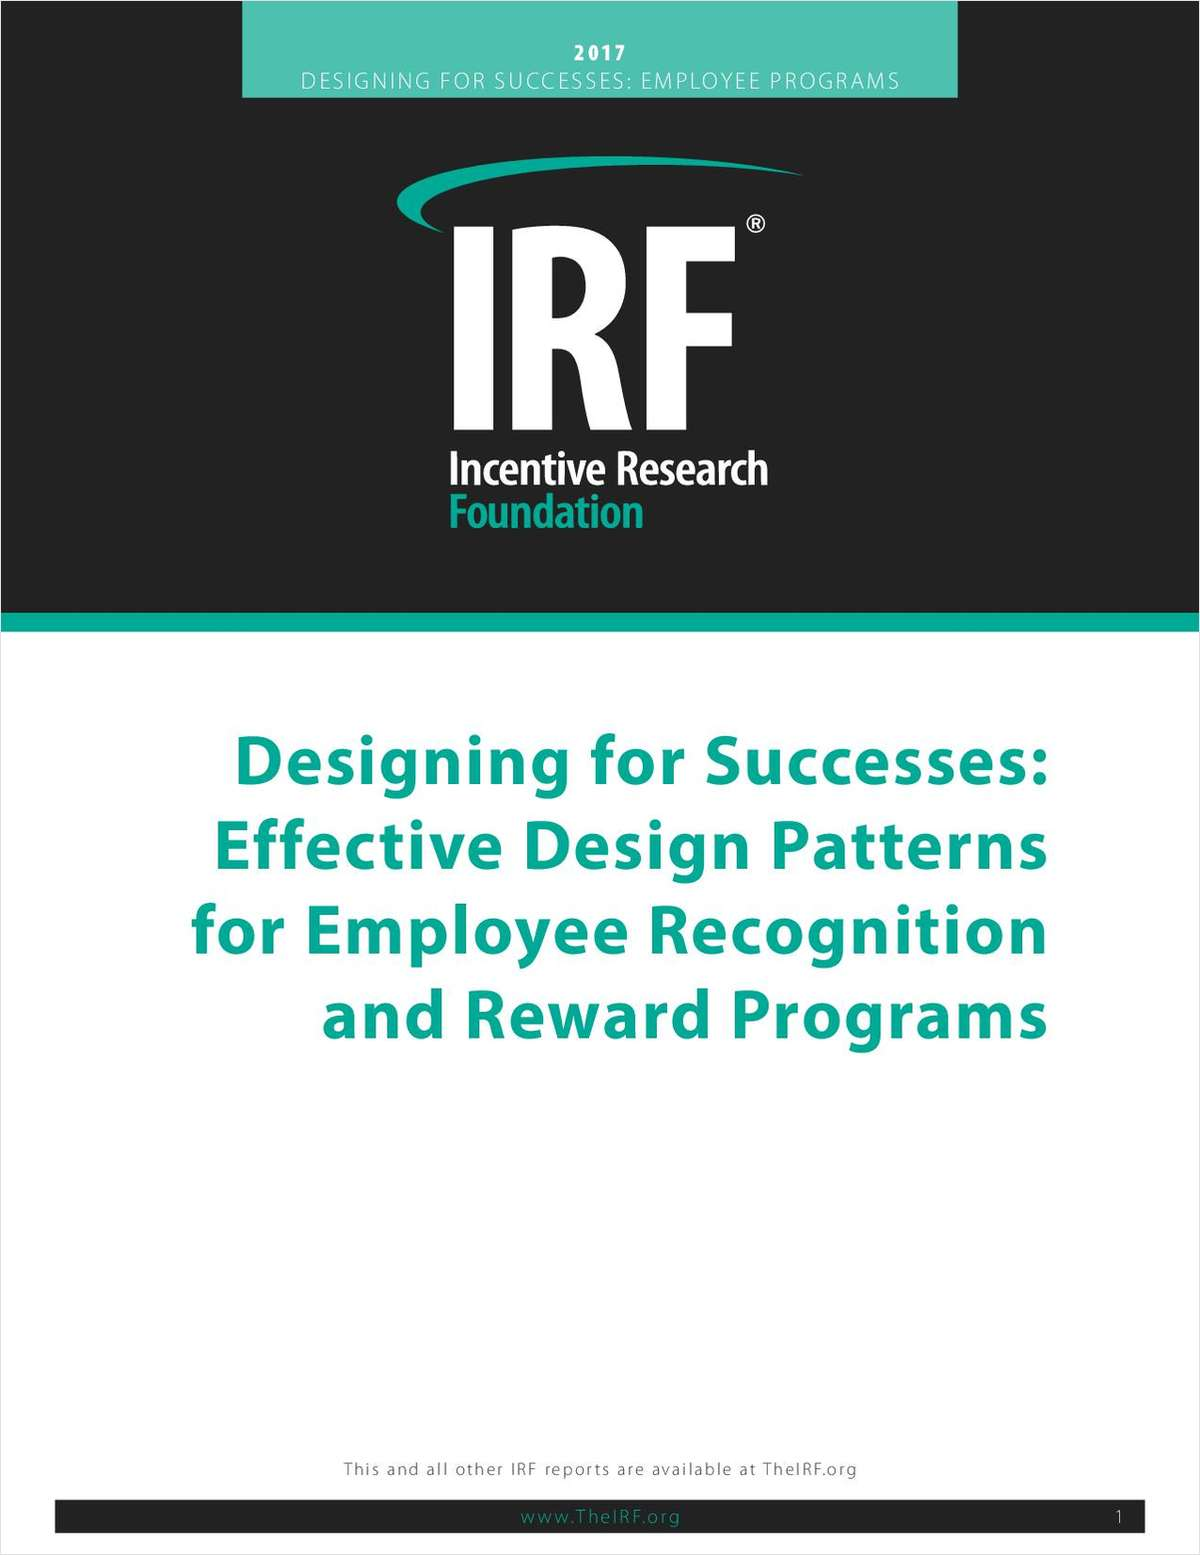 Designing Employee Recognition Programs for Success